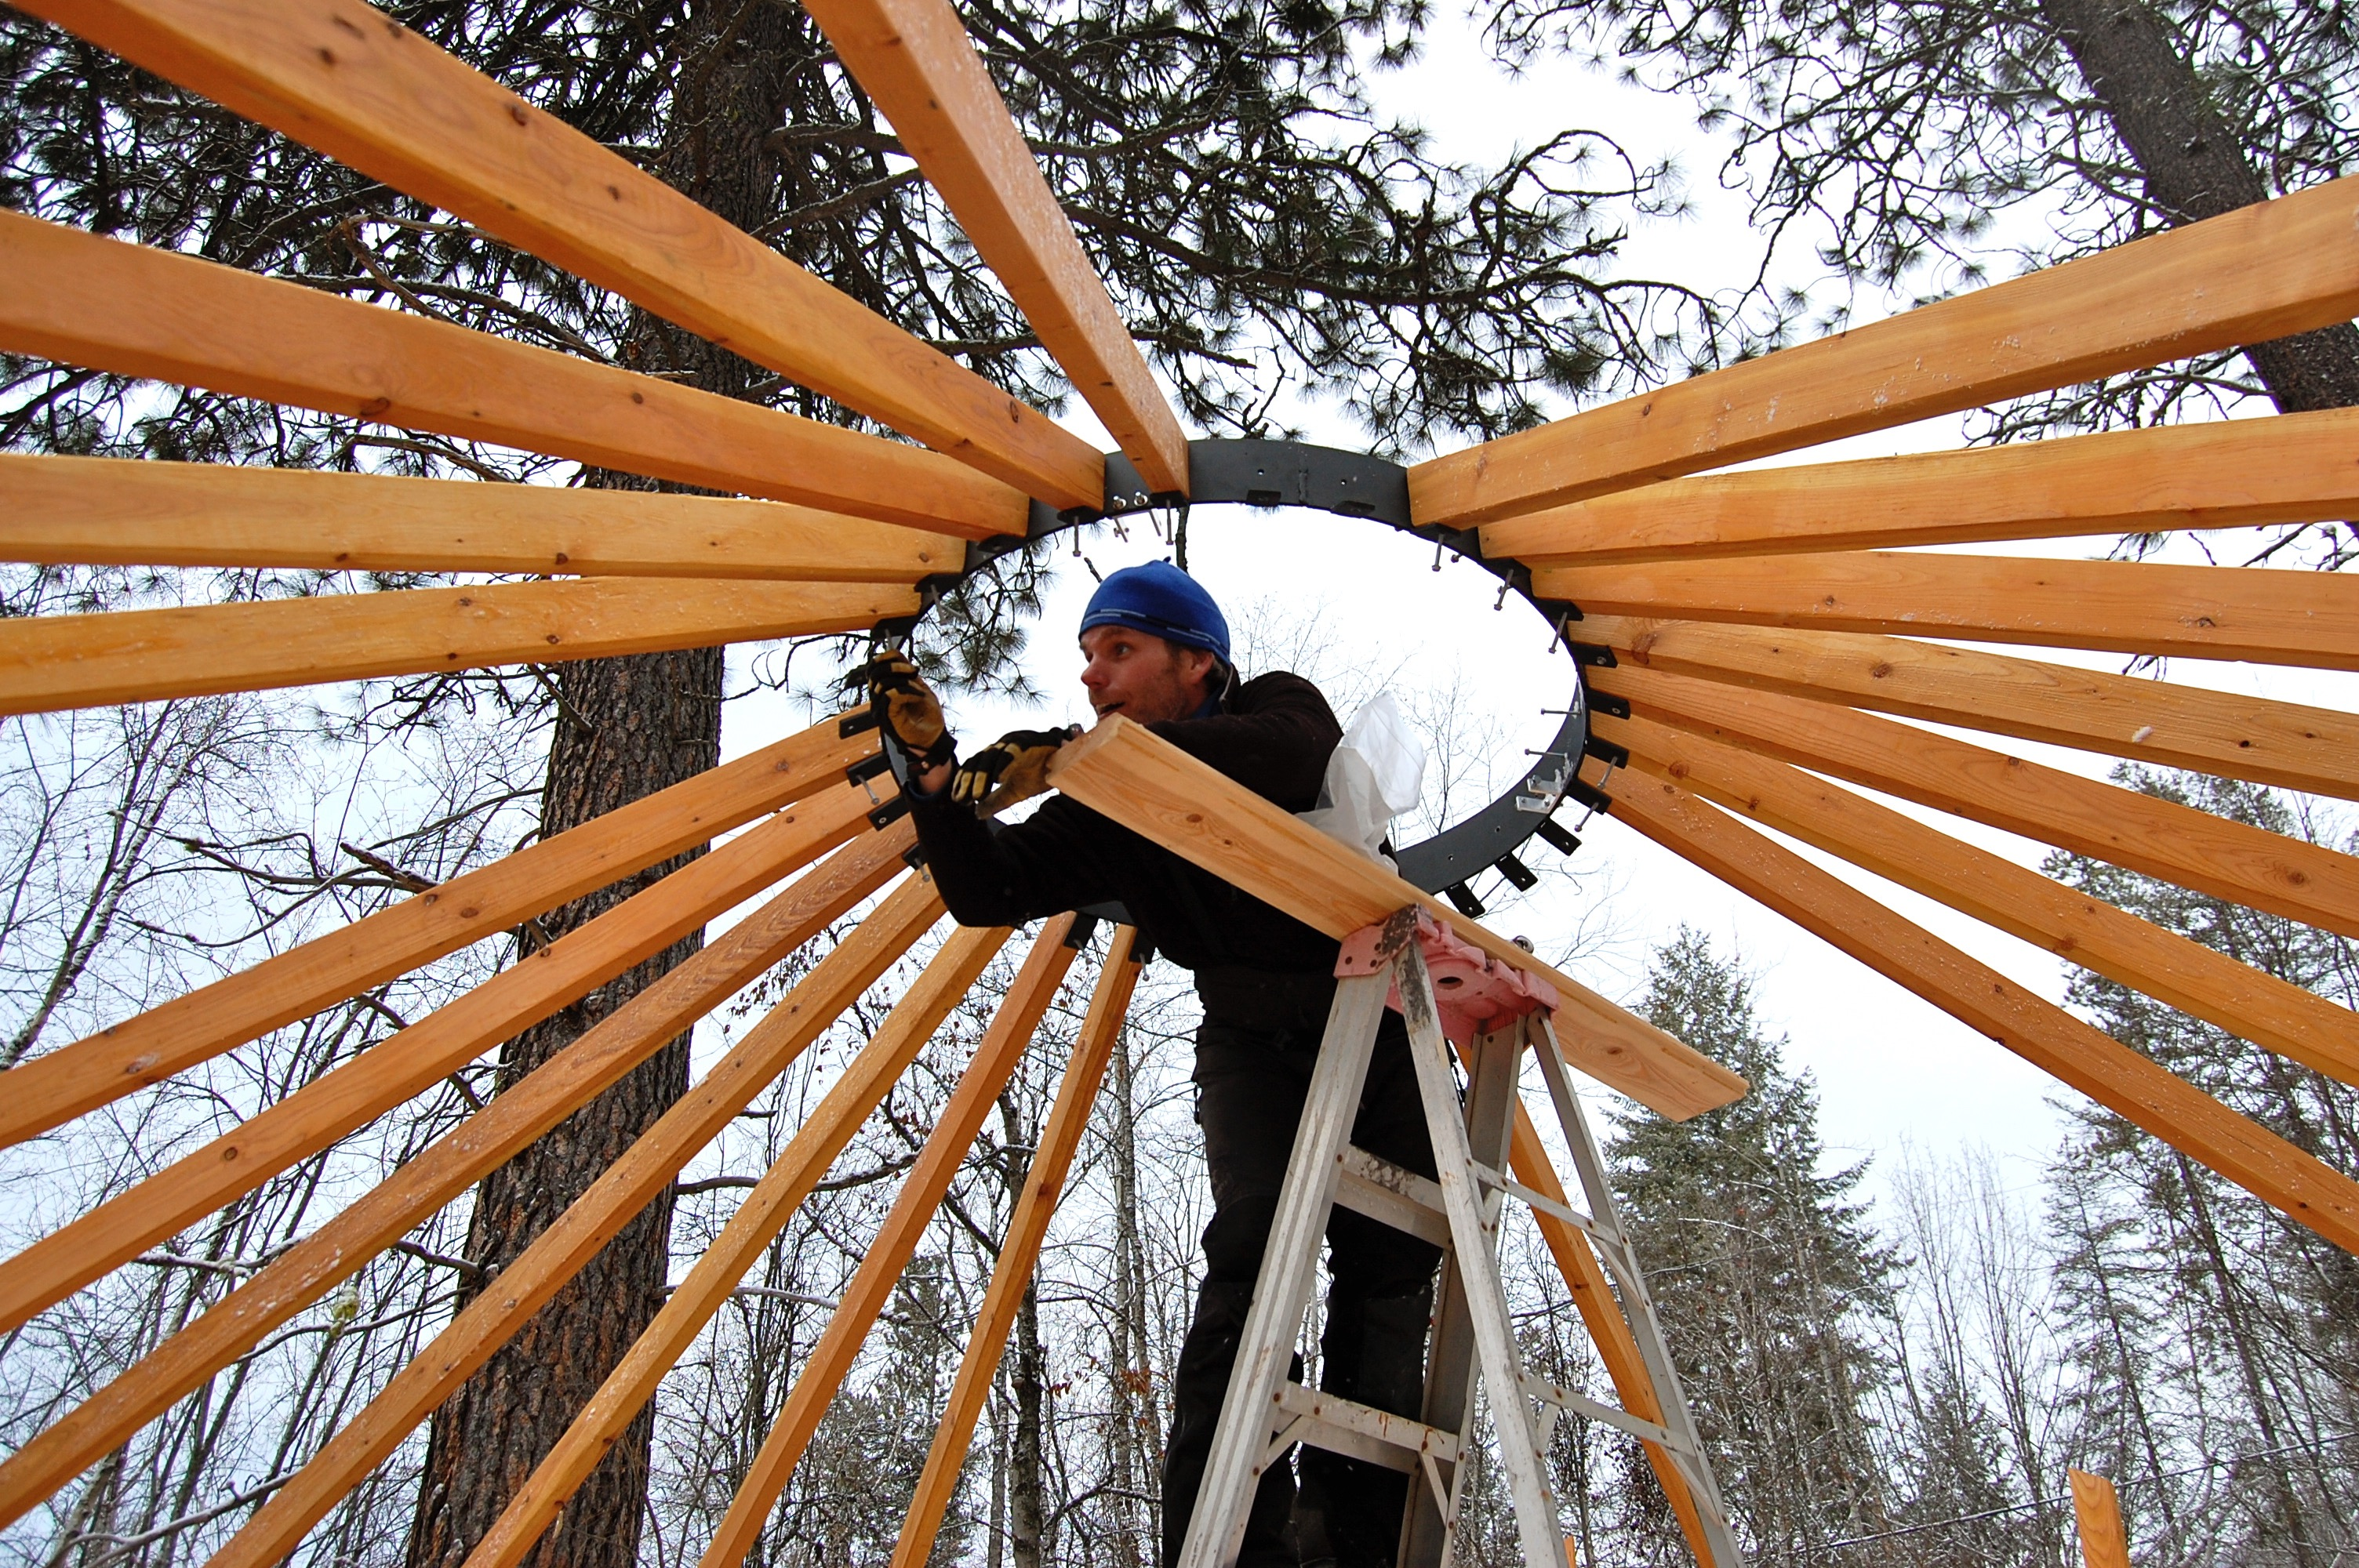 Assembling the yurt